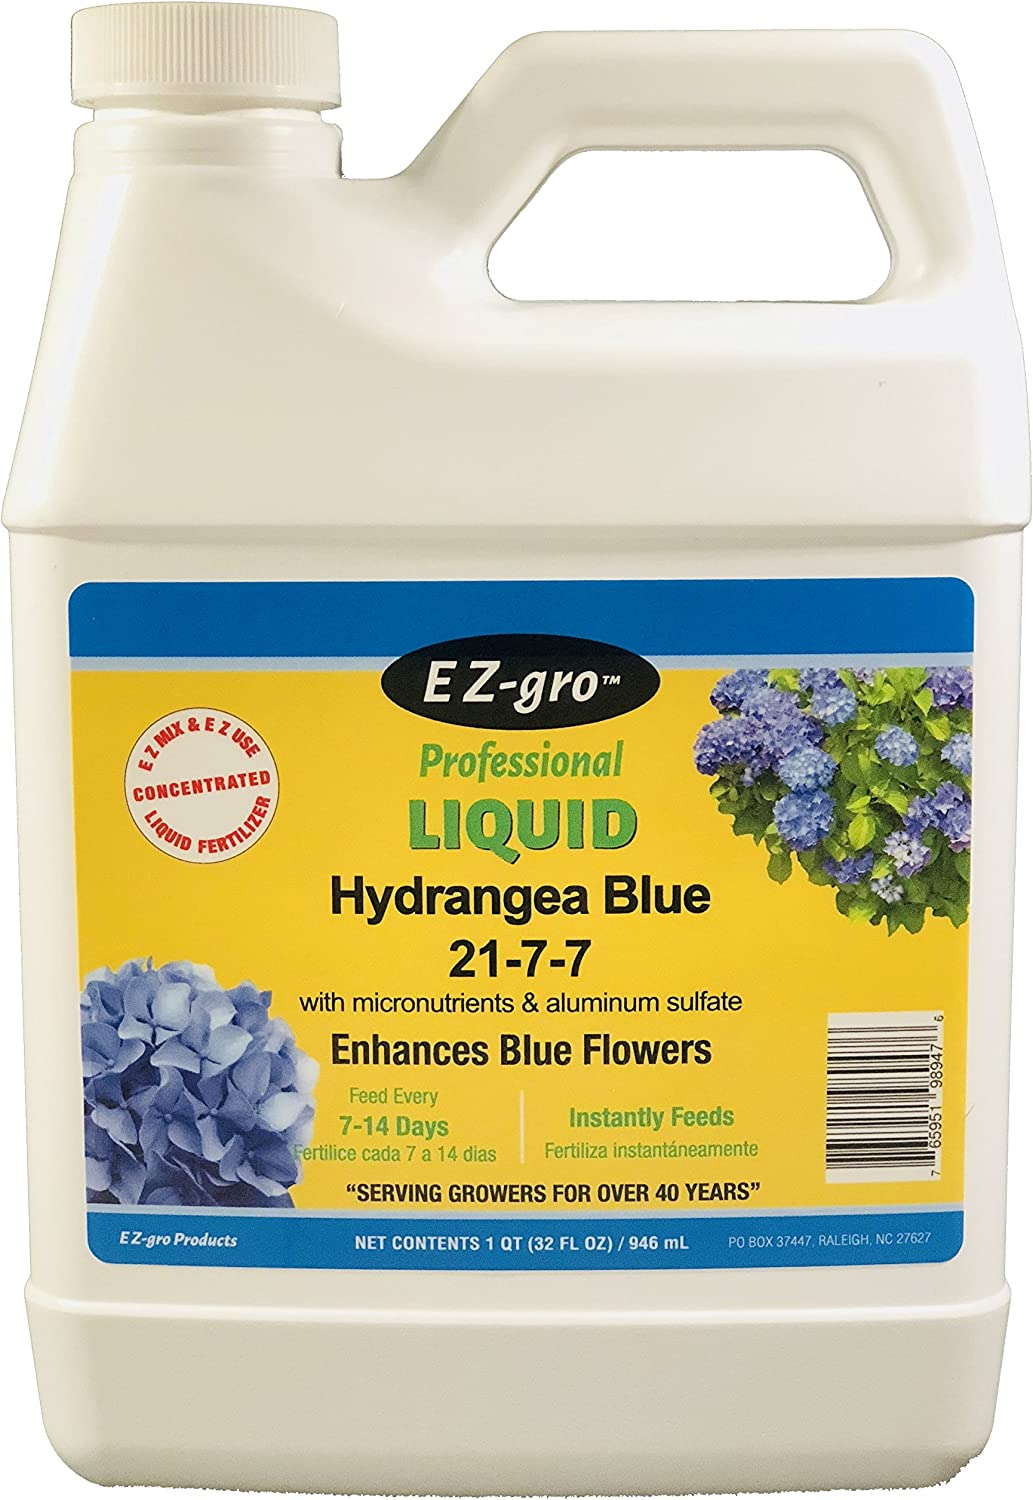 Hydrangea Fertilizers by E Z-GRO 21-7-7 with Added Aluminum Sulfate to Produce Blue Flowers | EZ-gro Hydrangea Fertilizer is Also an Excellent Rhododendron Fertilizer and Azalea Fertilizer | 1 qt